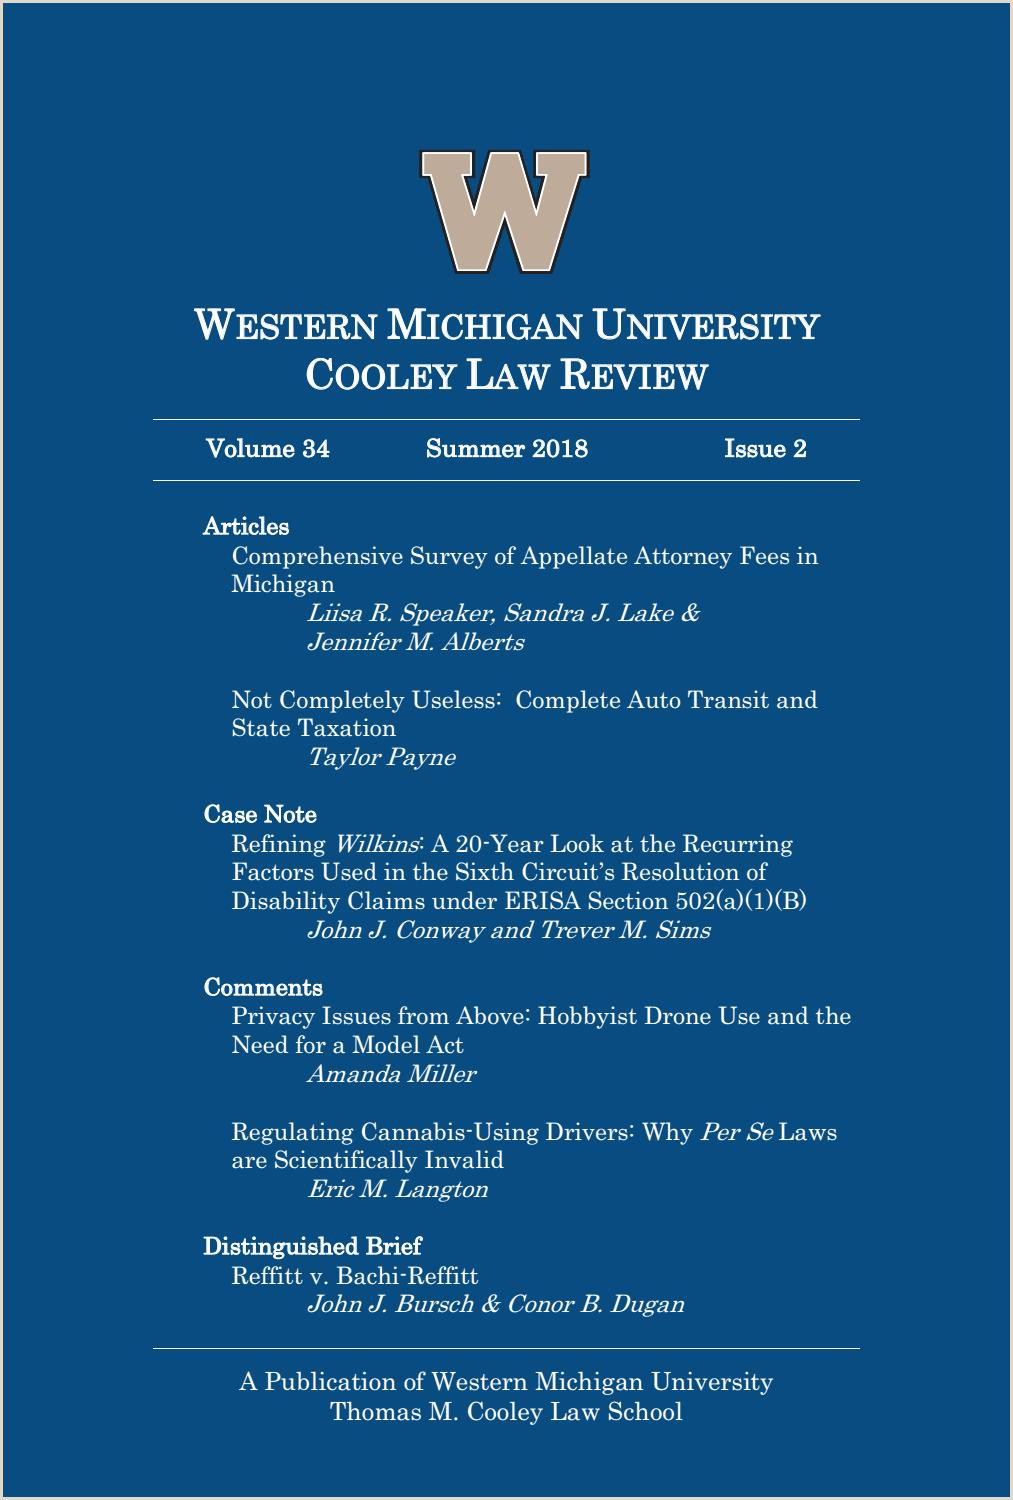 Western Michigan University Cooley Law Review Volume 34